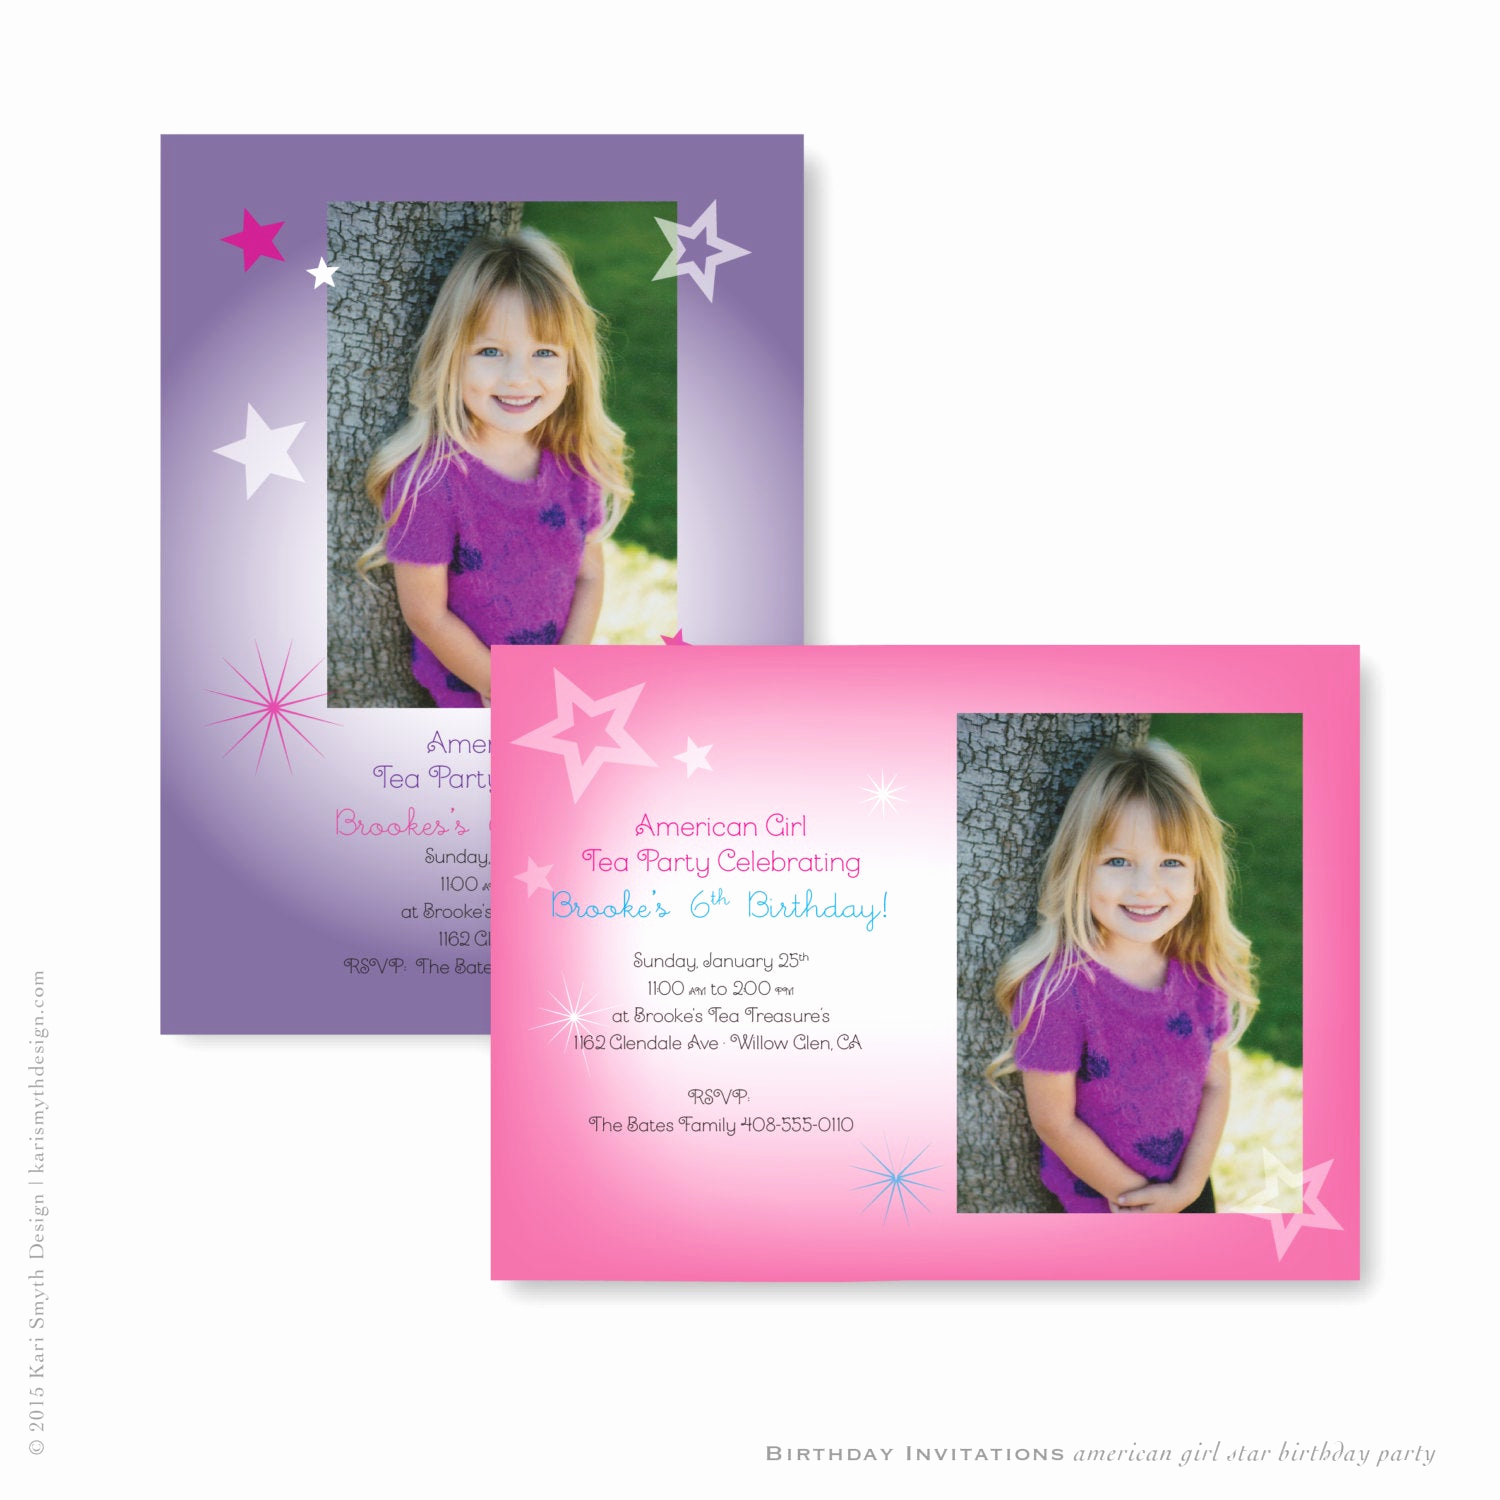 American Girl Birthday Invitation Lovely American Girl Star Birthday Party Invitations